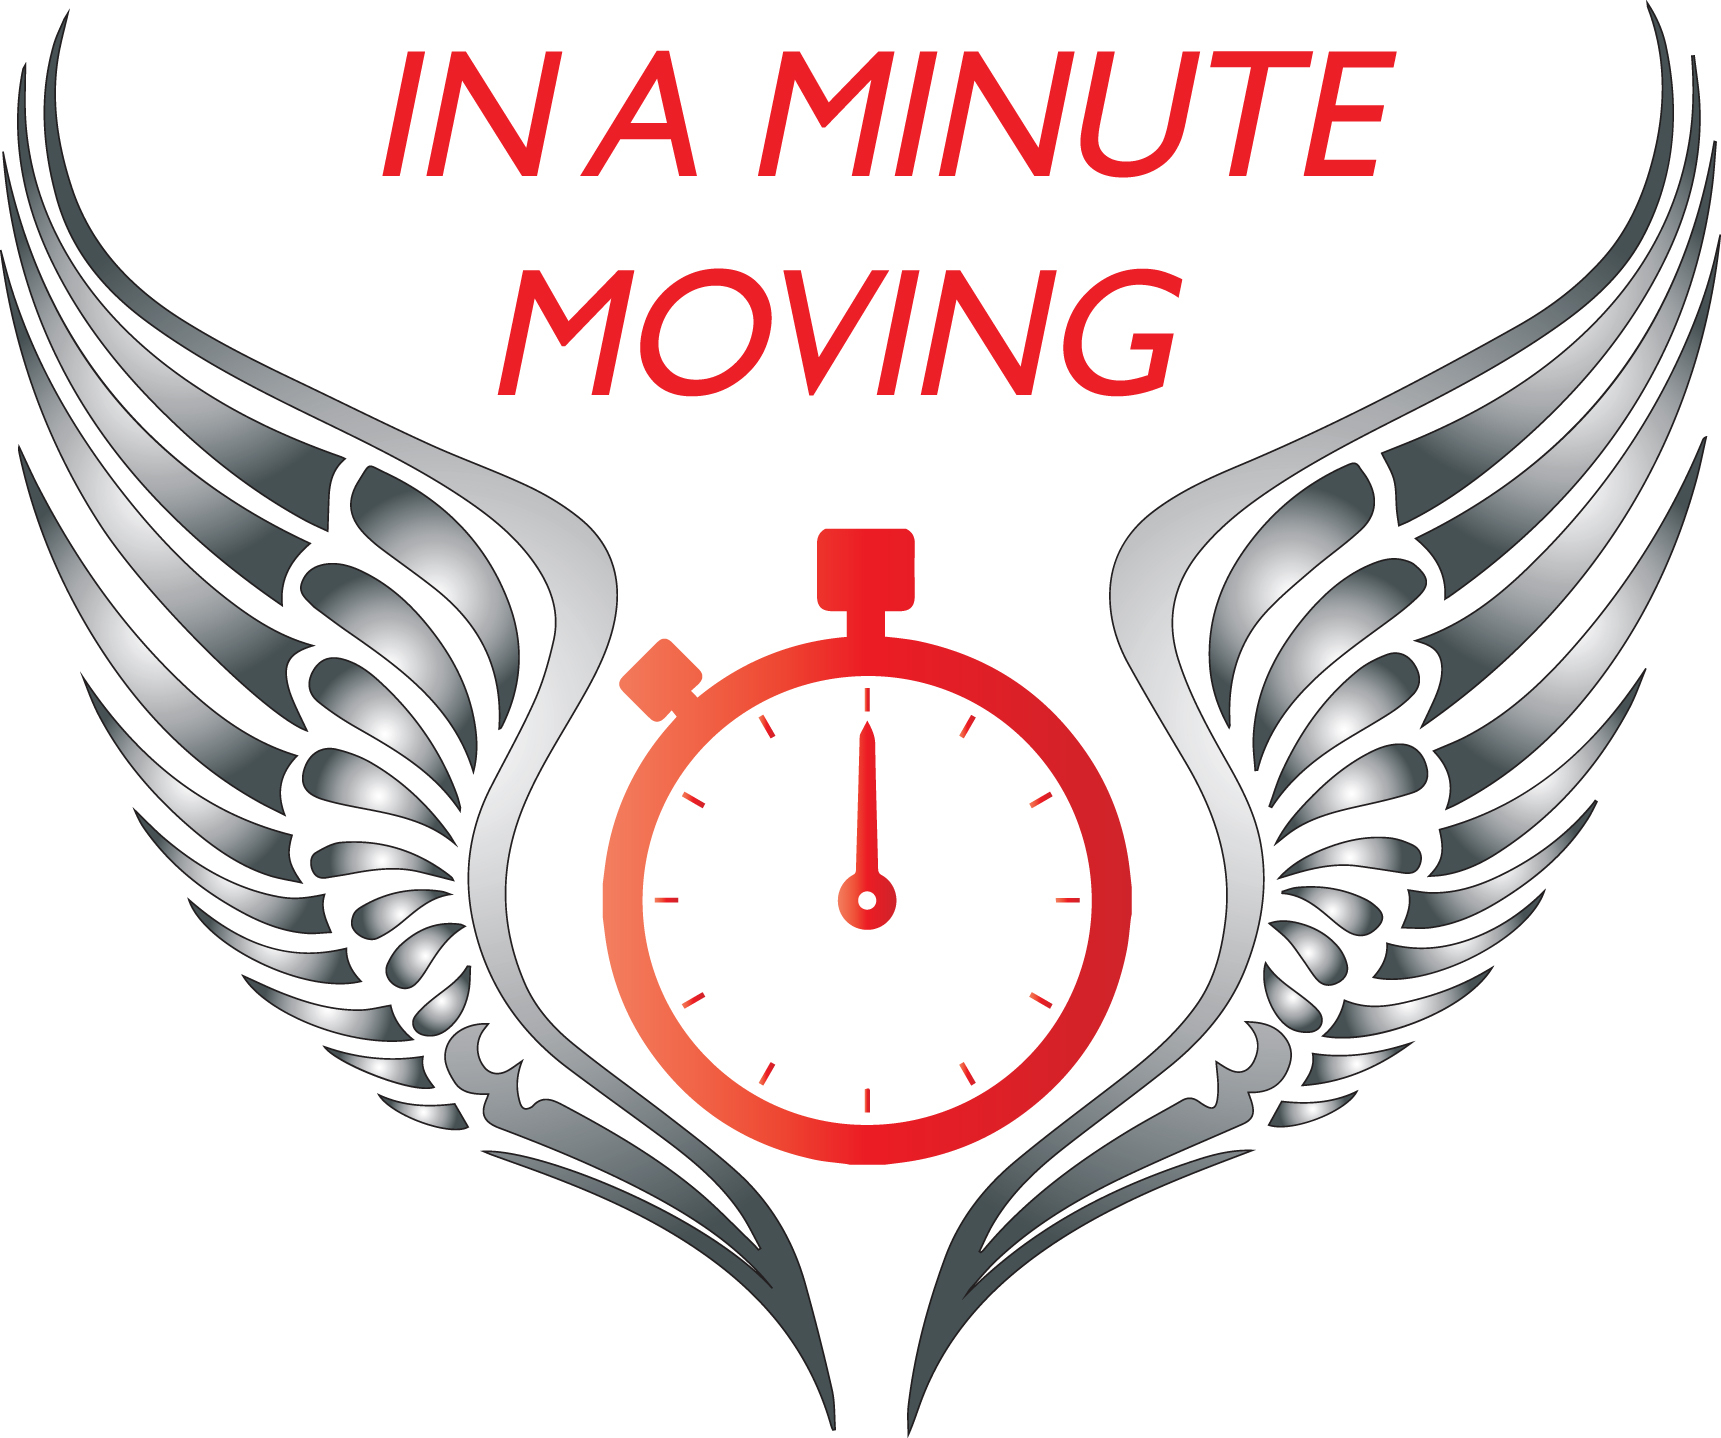 In A Minute Moving